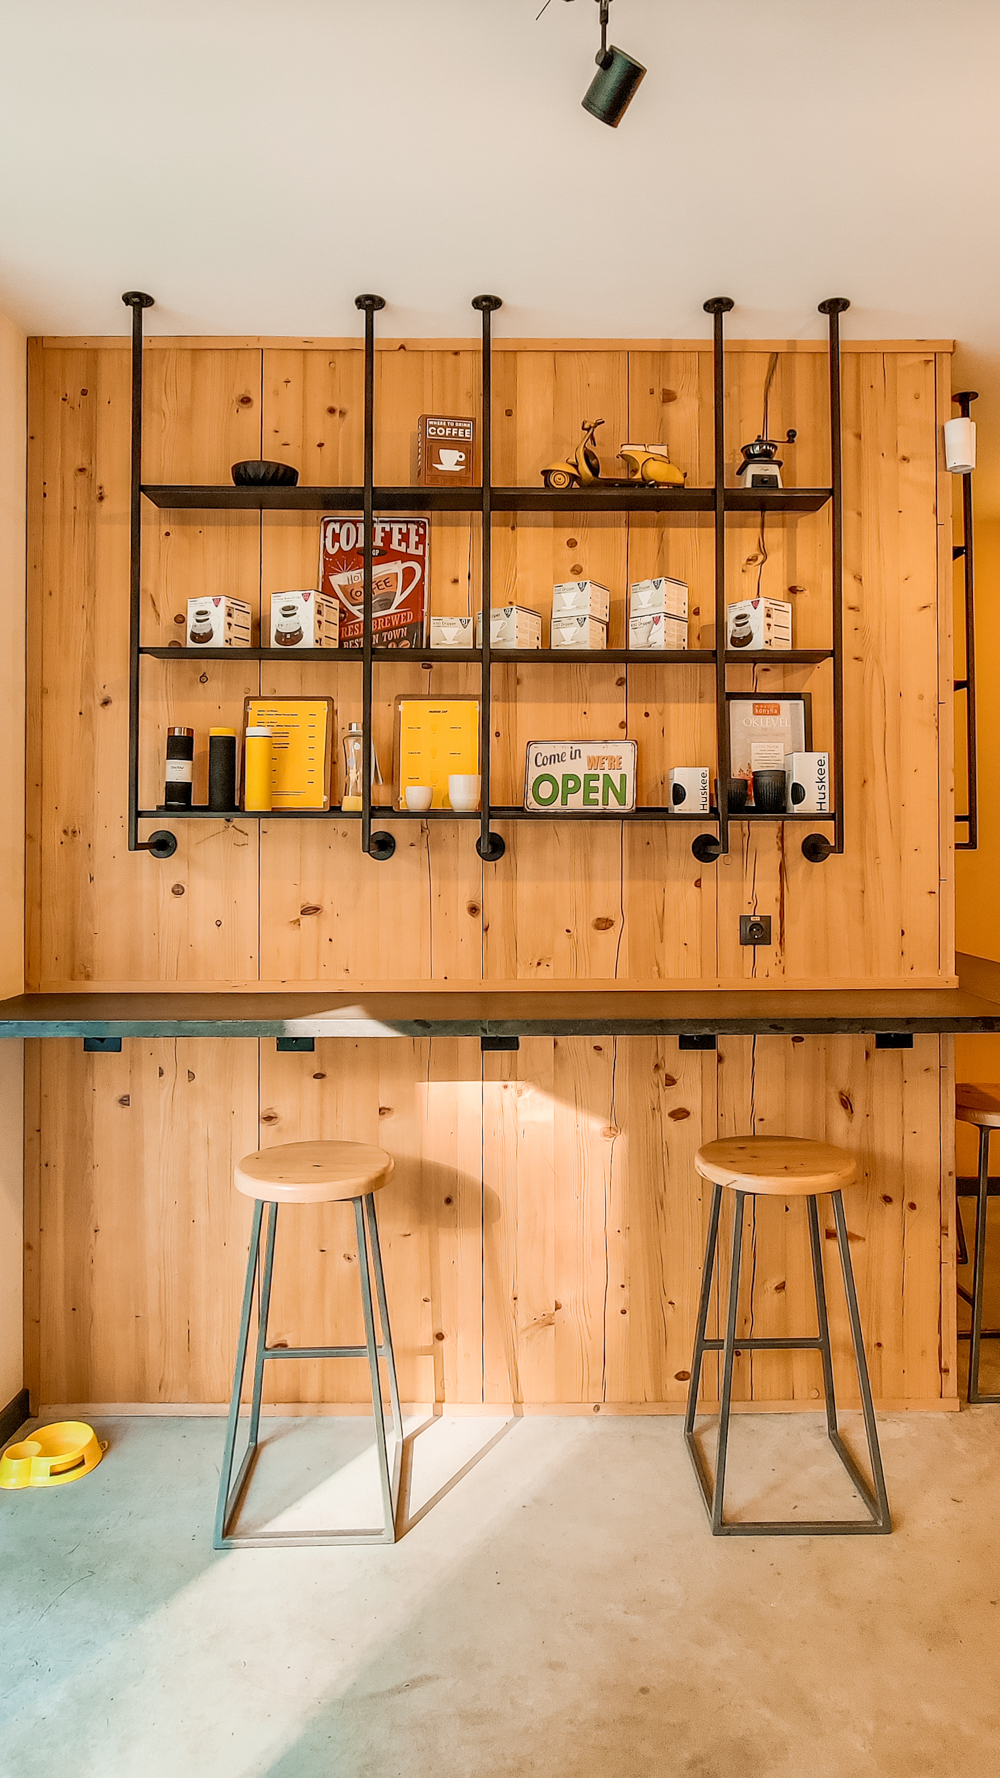 The Nook Specialty Coffeeshop - 10 must-visit stylish specialty coffee shops in Budapest, Hungary   Aliz's Wonderland